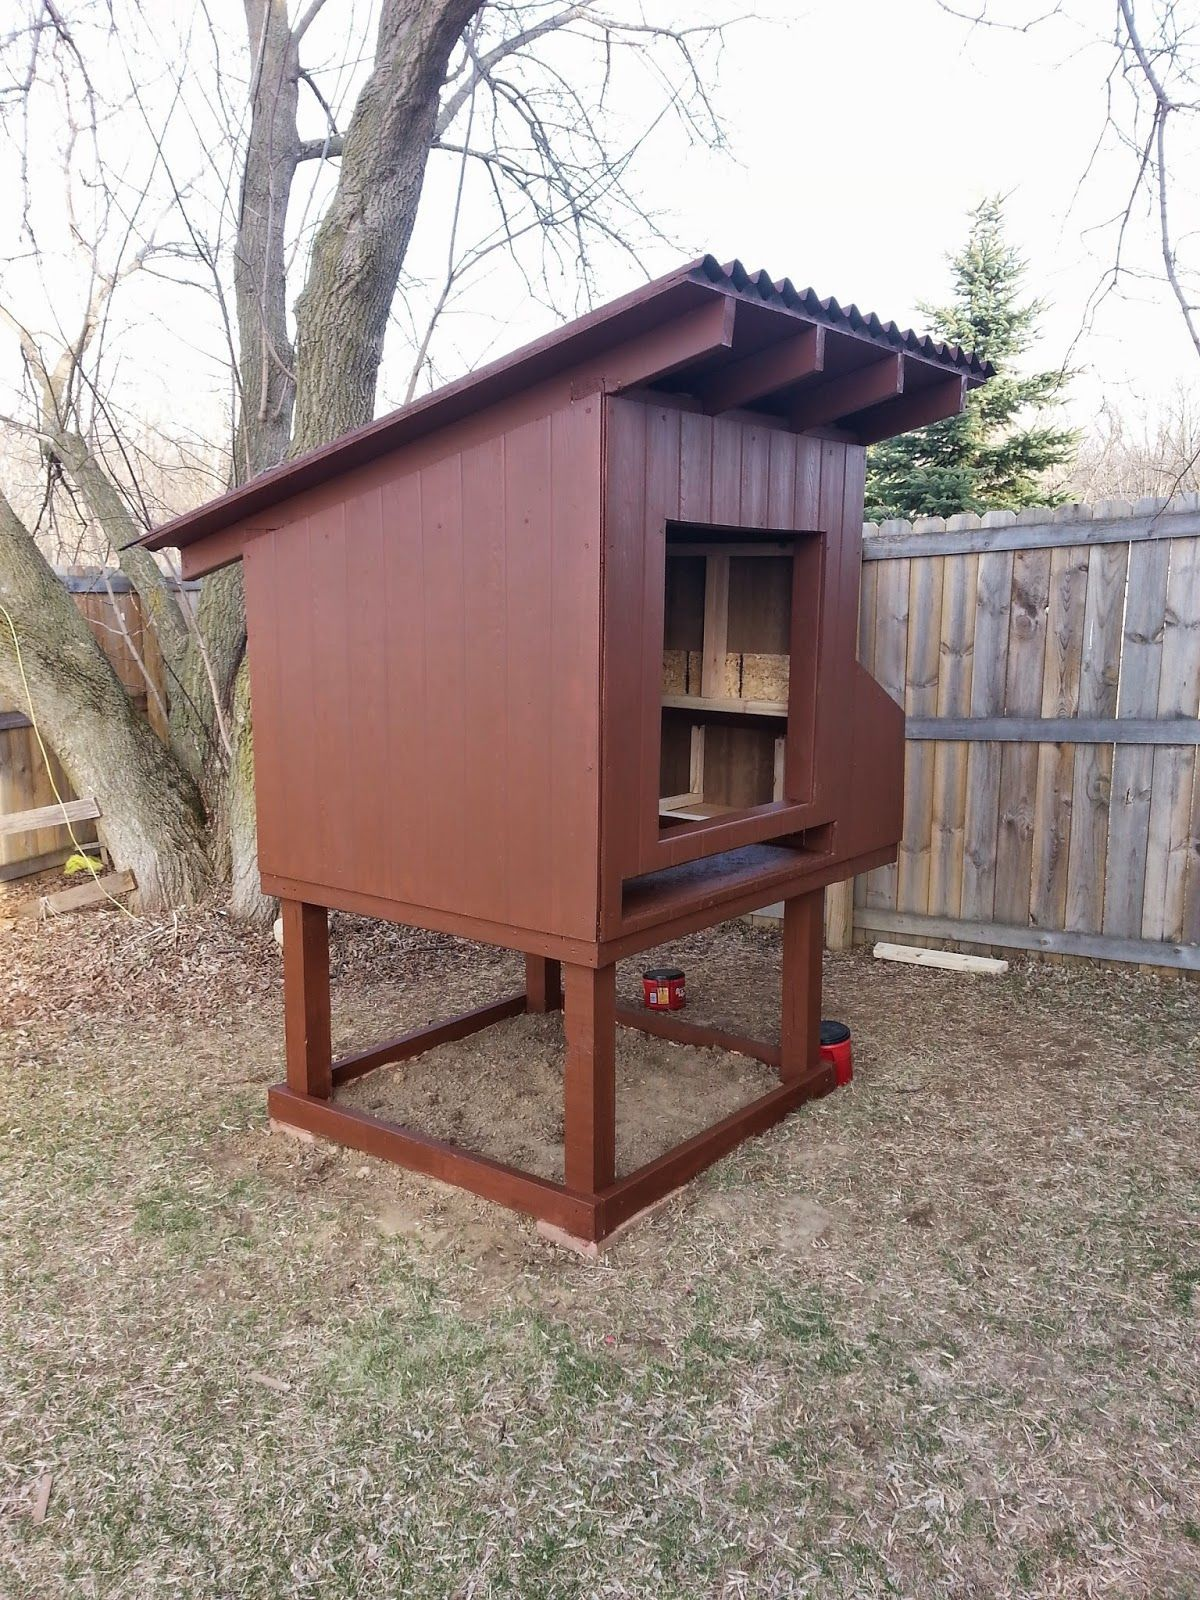 Backyard raised chicken coop with built-in floor tray for ...